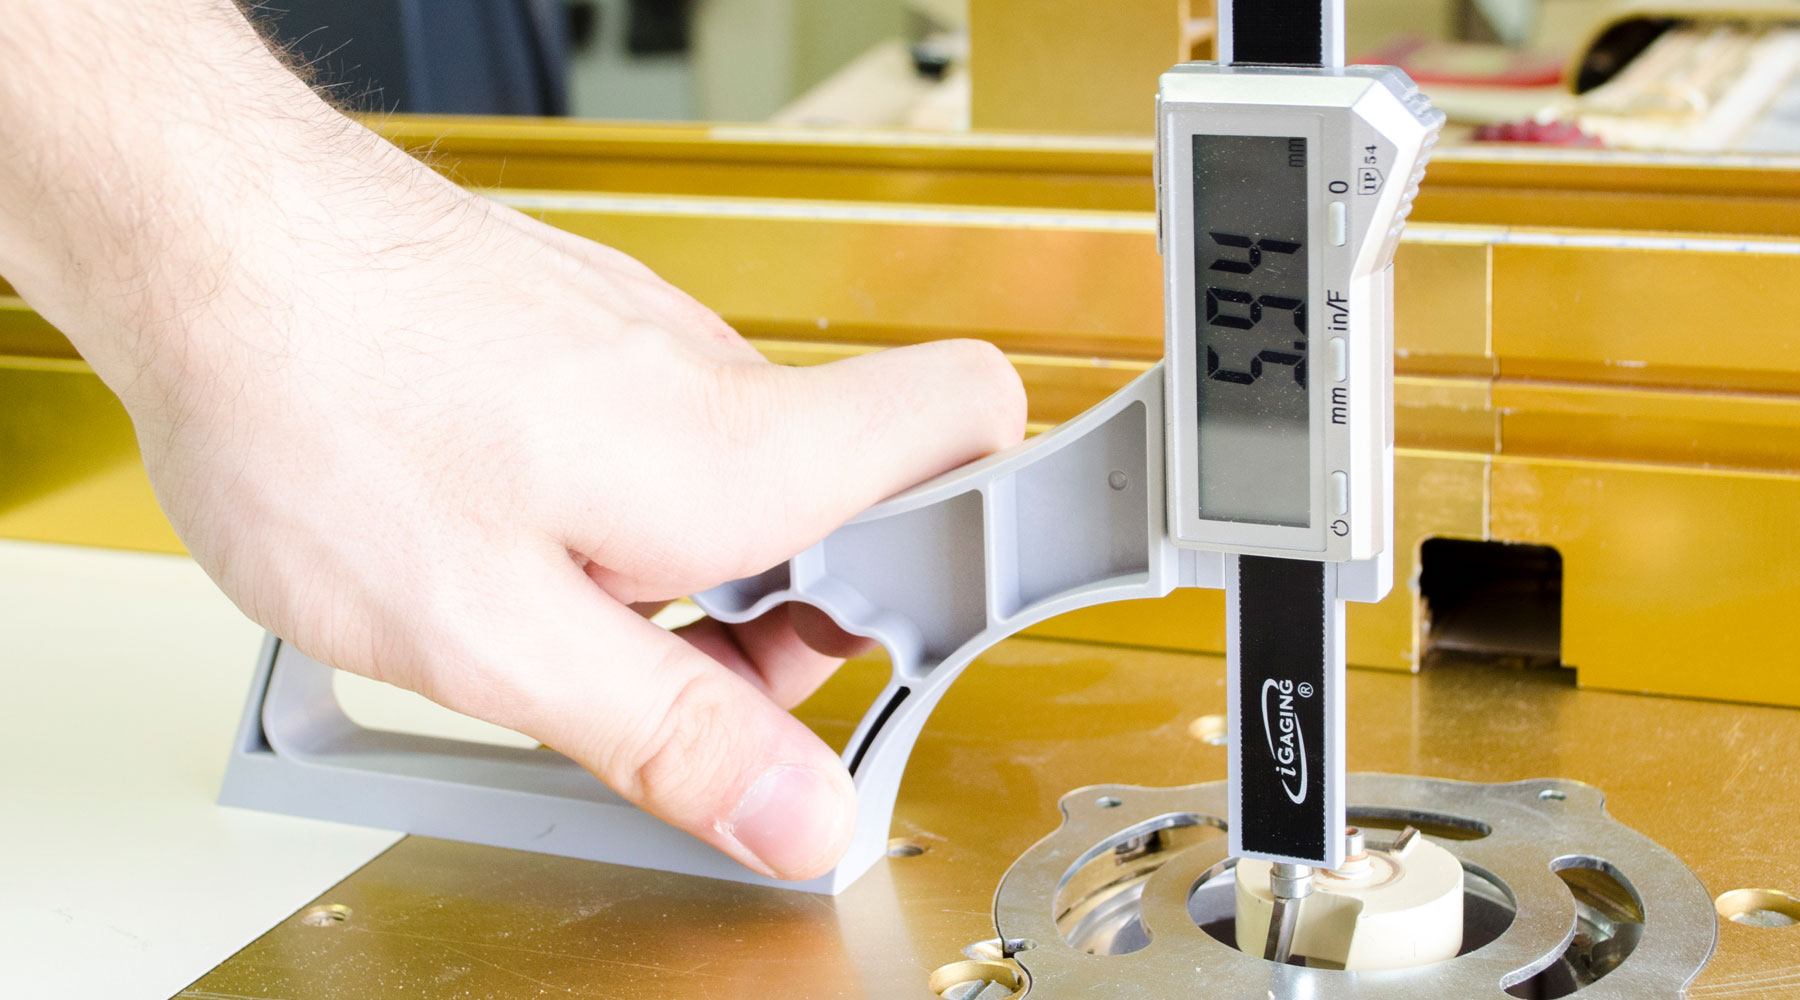 iGaging SnapCheck Digital Gauge Review, The Woodworker Magazine